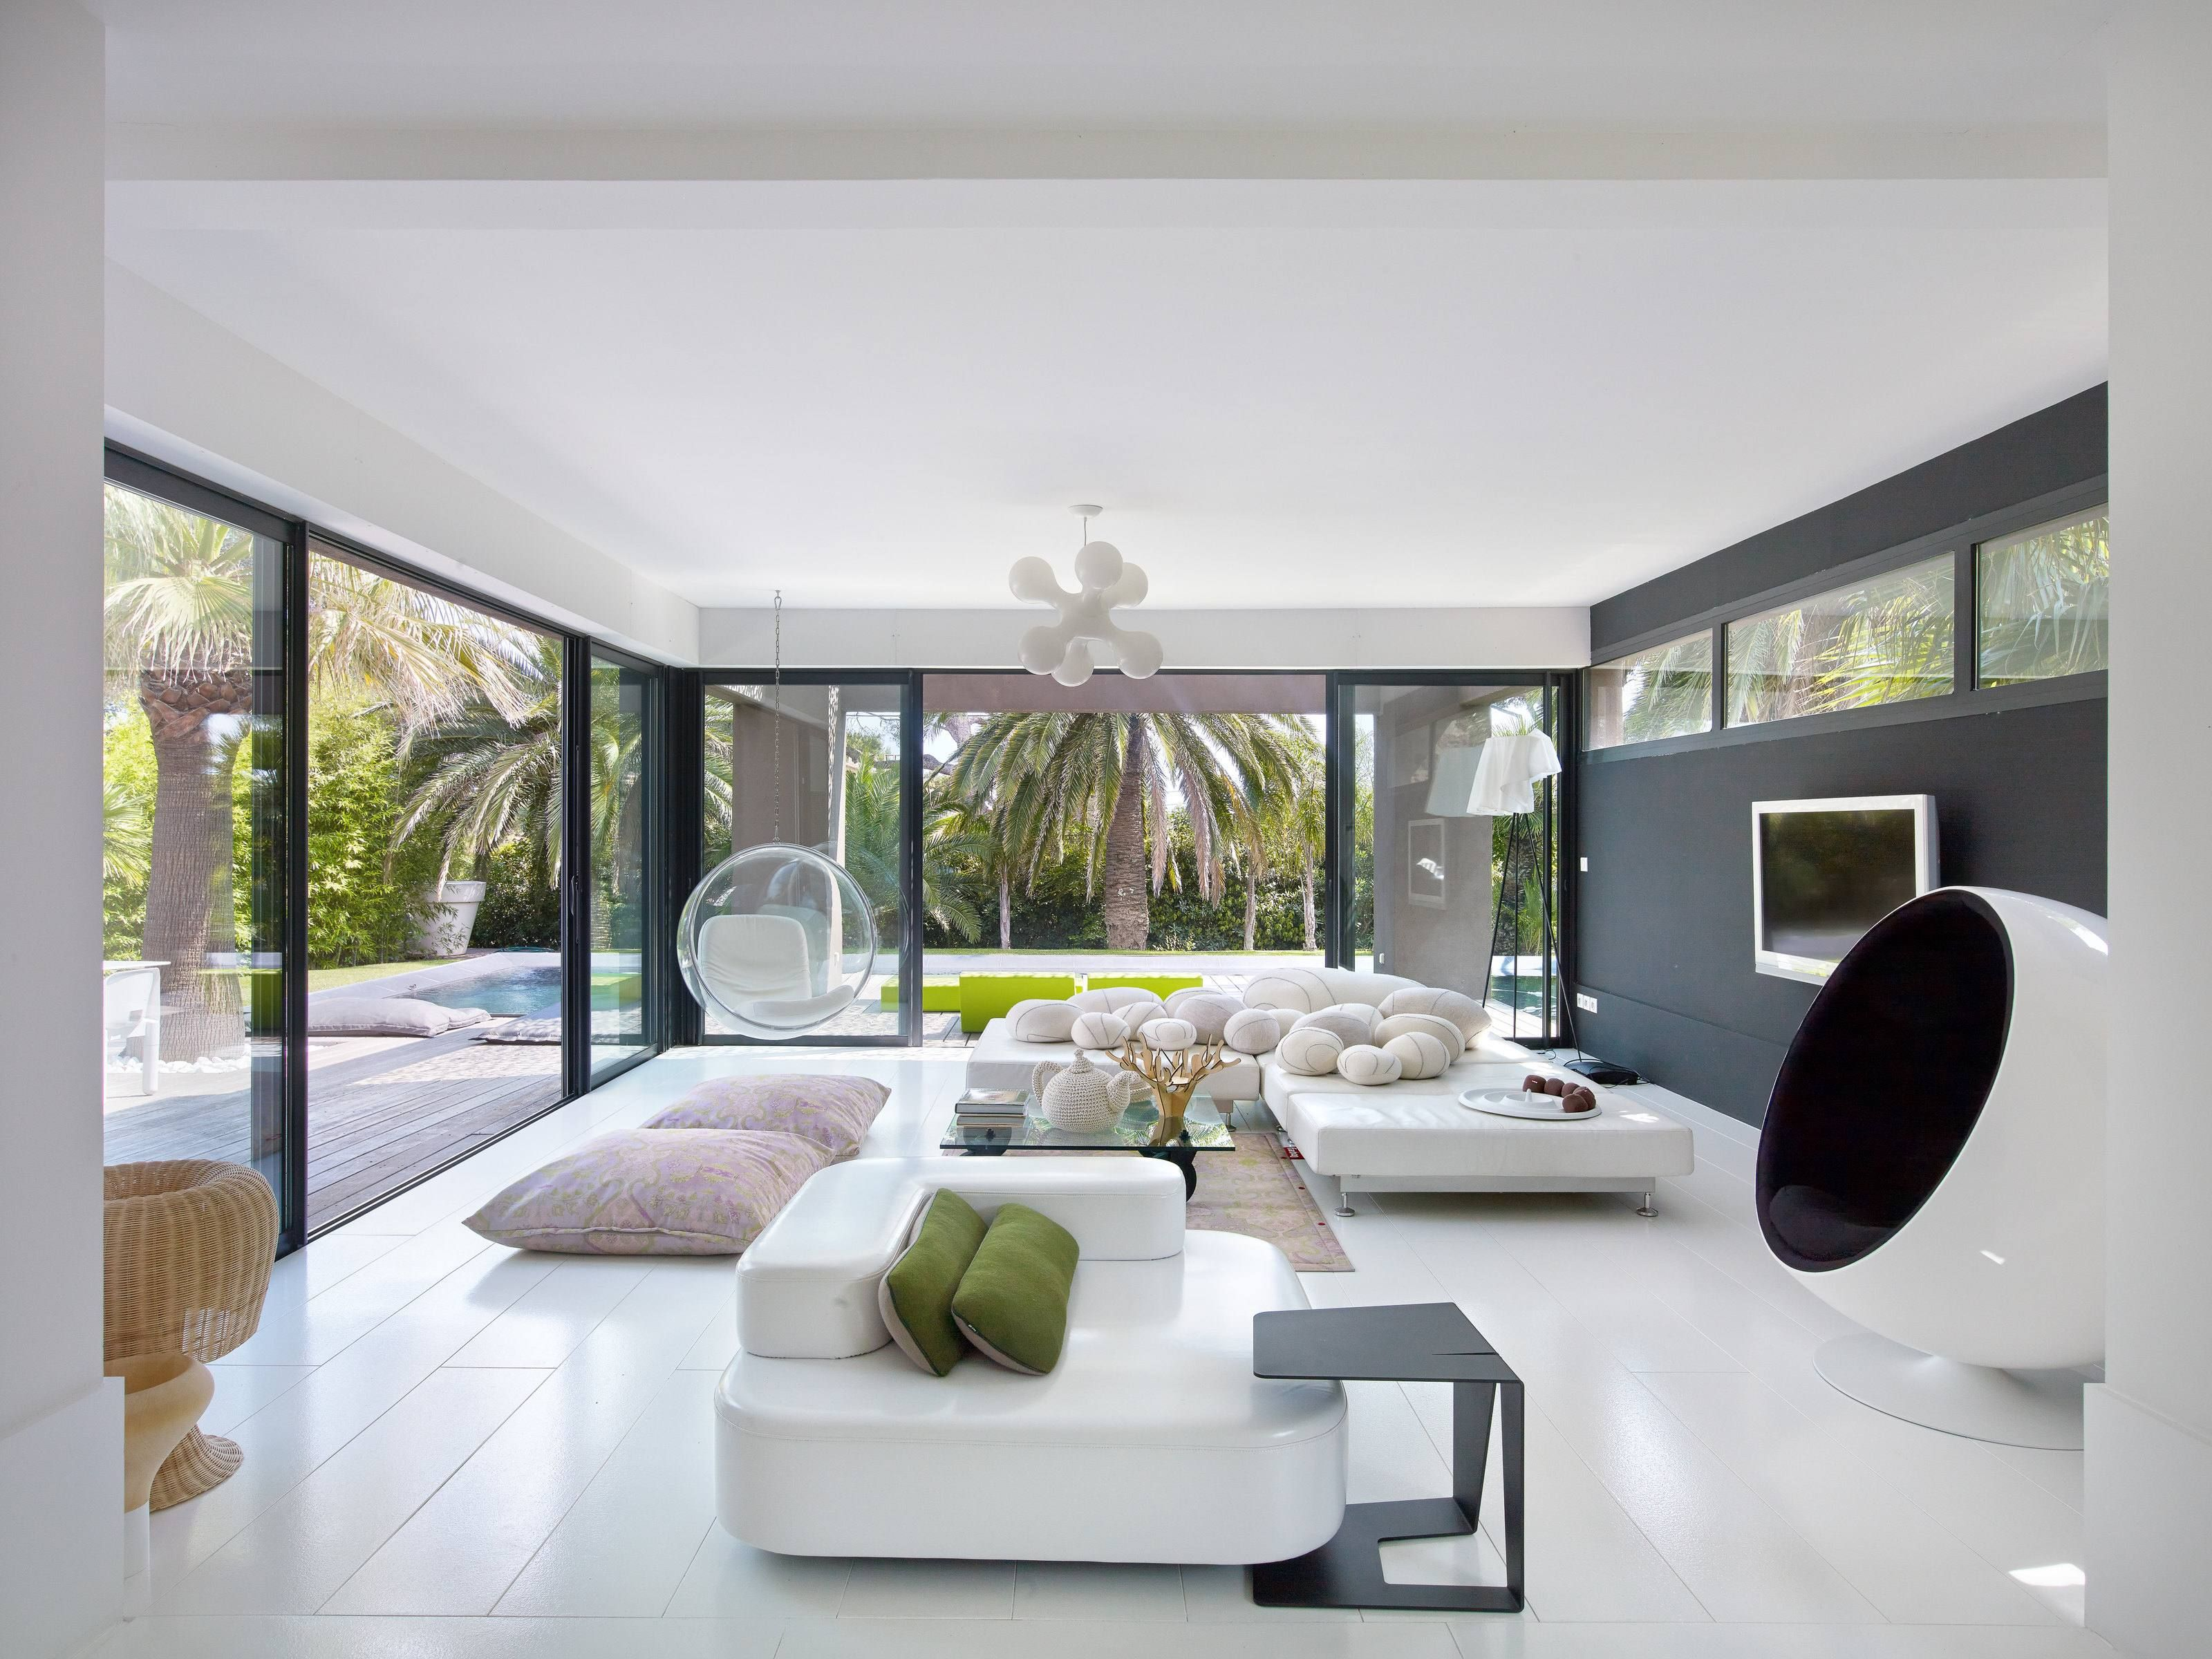 Get inspired with living roomideas and photos for your home